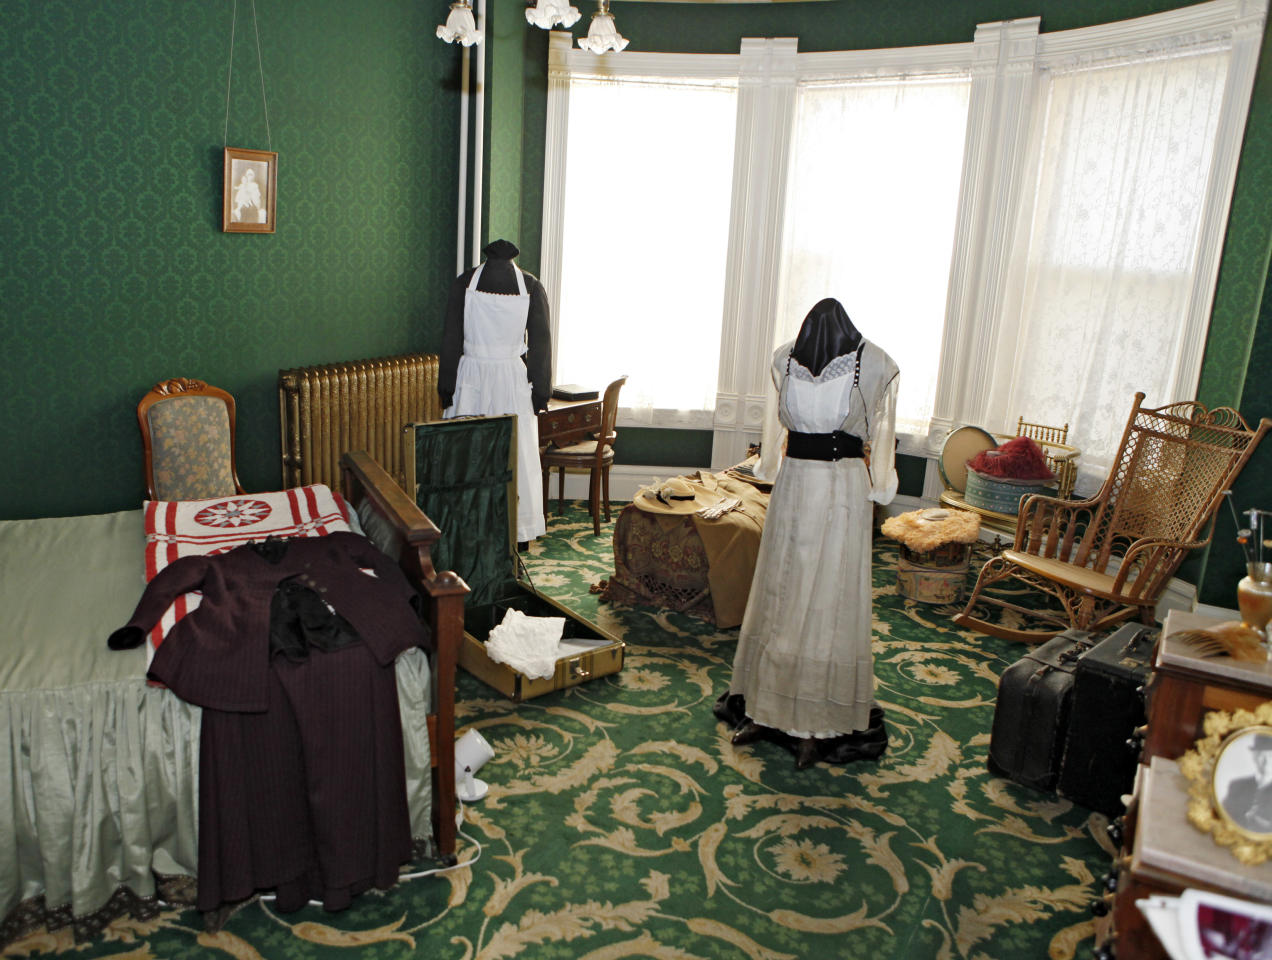 """This March 19, 2012 photo shows Molly's bedroom in the Molly Brown House Museum in Denver. A few blocks from Colorado's state Capitol _ over 1700 miles from the Atlantic Ocean and a mile above sea level _ is a museum dedicated to a woman eclipsed by legend following the sinking of the Titantic. The """"unsinkable Molly Brown"""" moved into this stone Victorian home after she and her husband struck it rich at a gold mine in Colorado's mountains, nearly 20 years before she boarded the Titanic because it was the first boat she could get back home to visit her ailing grandson. (AP Photo/Ed Andrieski)"""